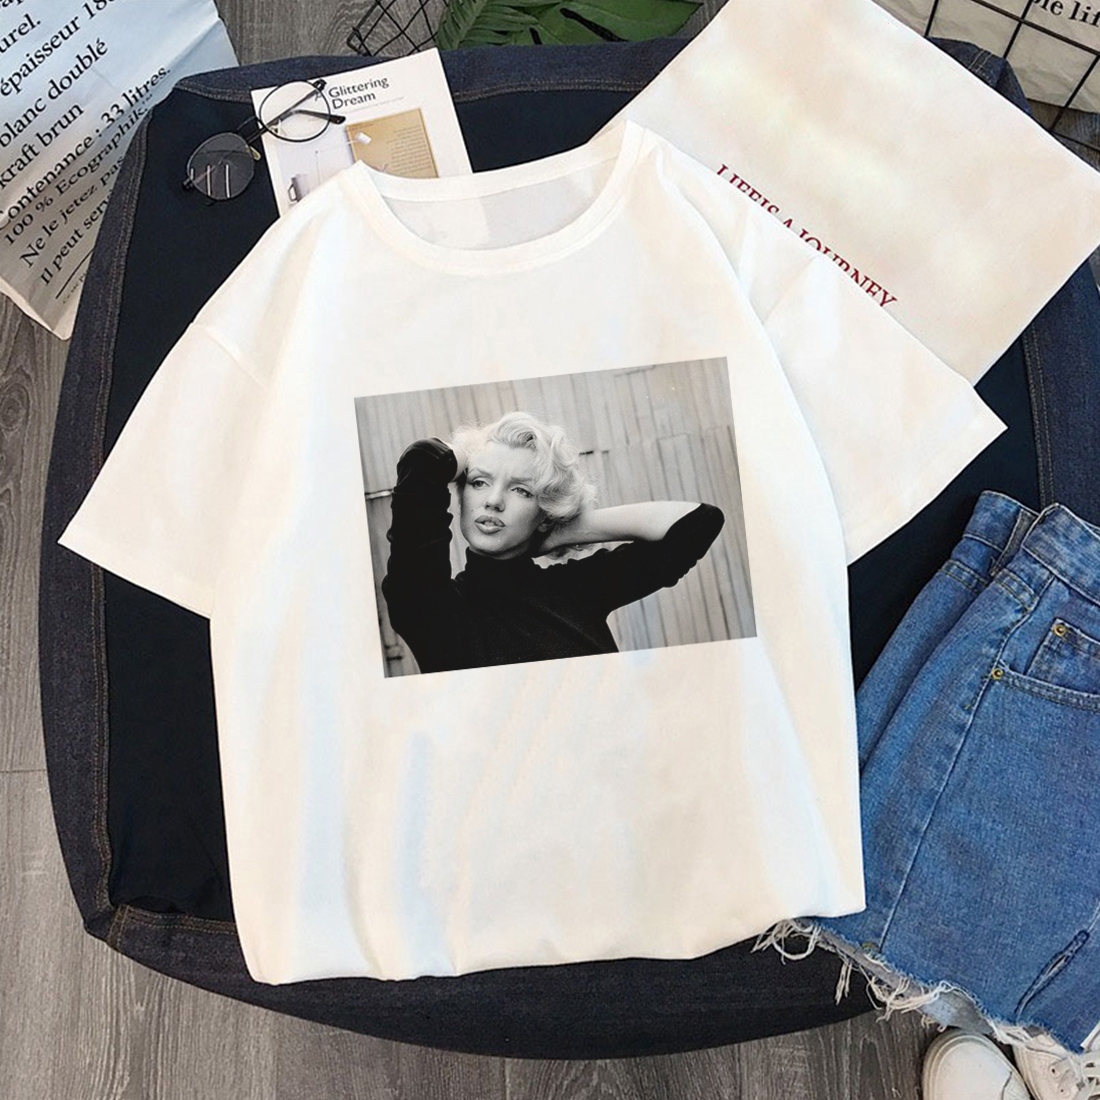 Summer Marilyn Monroe Fun Fashion Printed T Shirt Spoof Personality Harajuku Funny Casual Thin British Style Tops Women Clothing